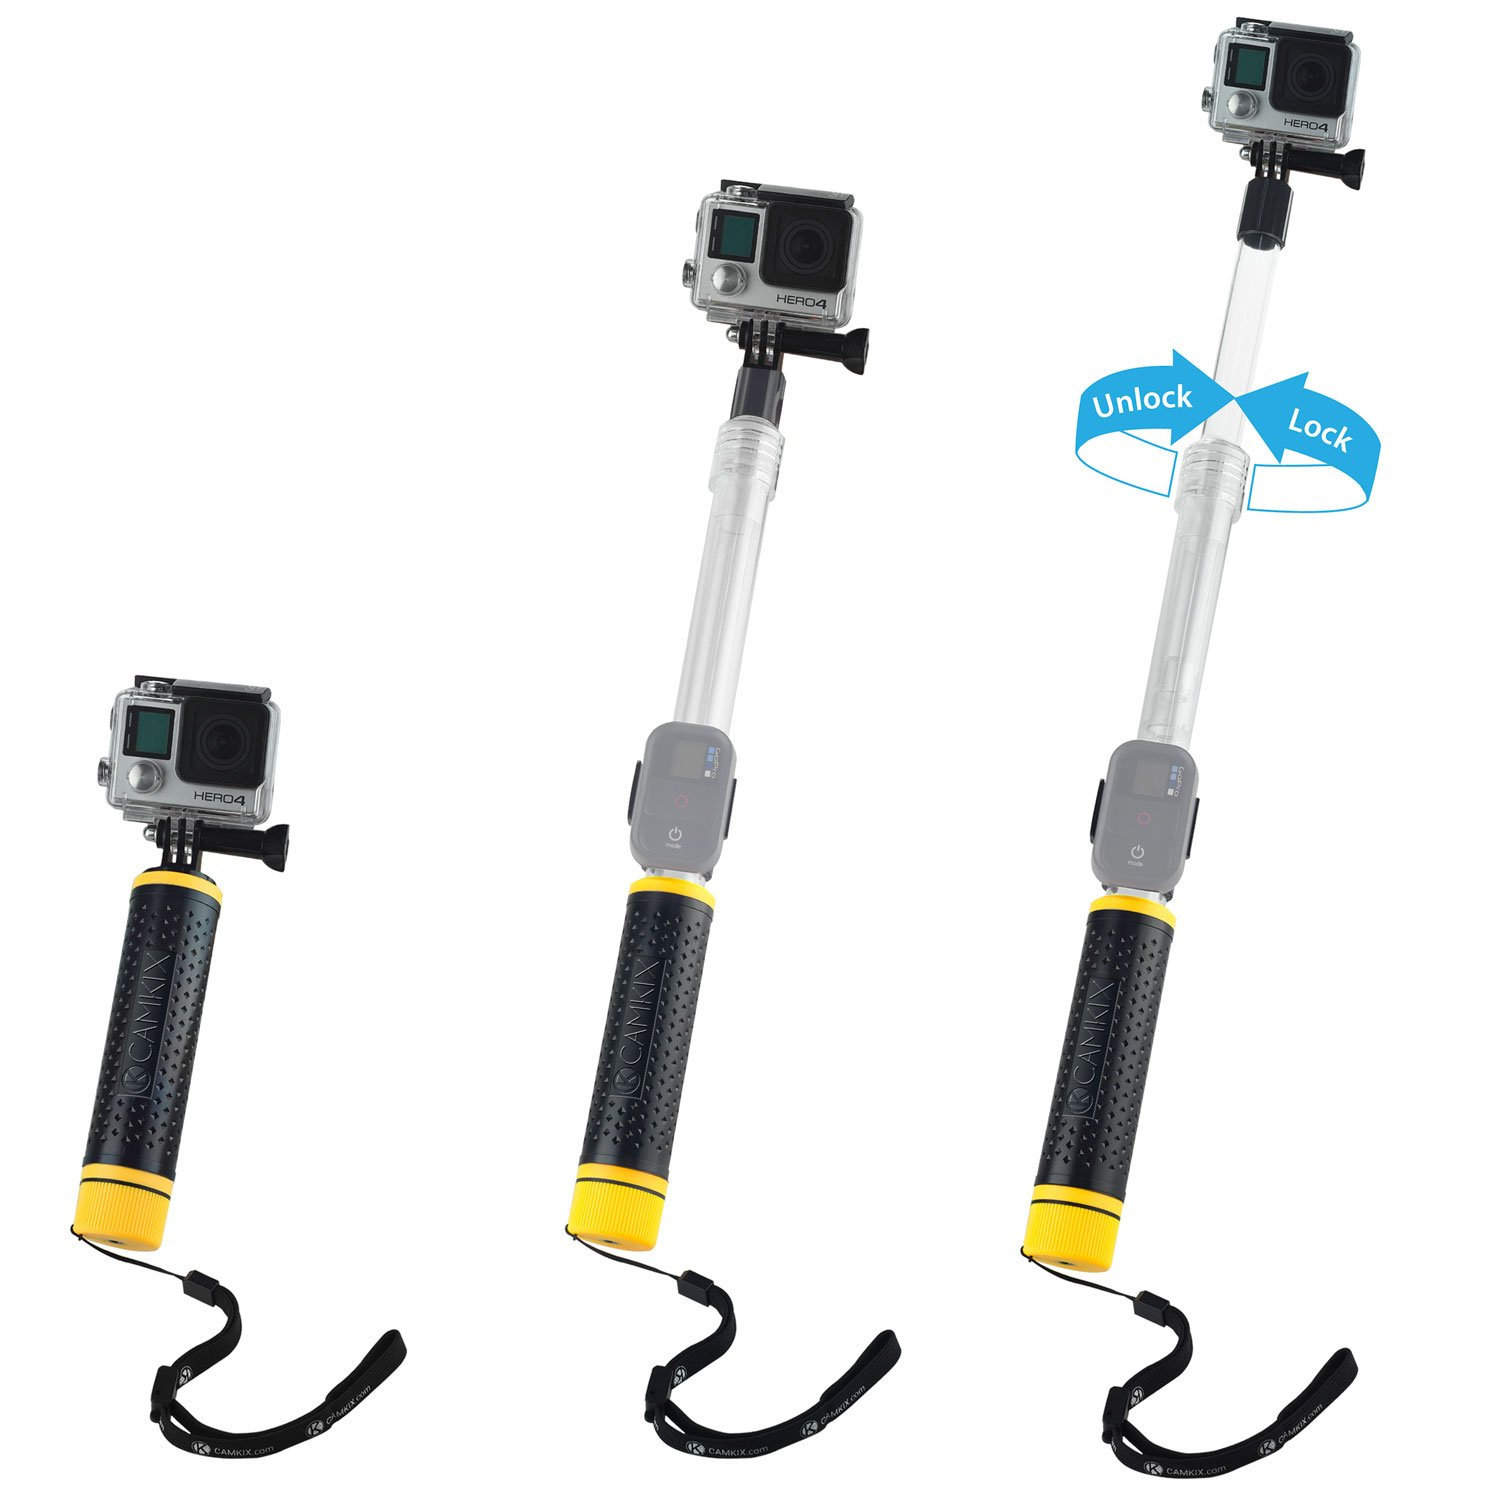 CamKix Waterproof Telescopic Pole Floating Hand Grip - Compatible with Gopro Hero 7, 6, 5, Black, Session, Hero 4, Session and DJI Osmo Action by CamKix